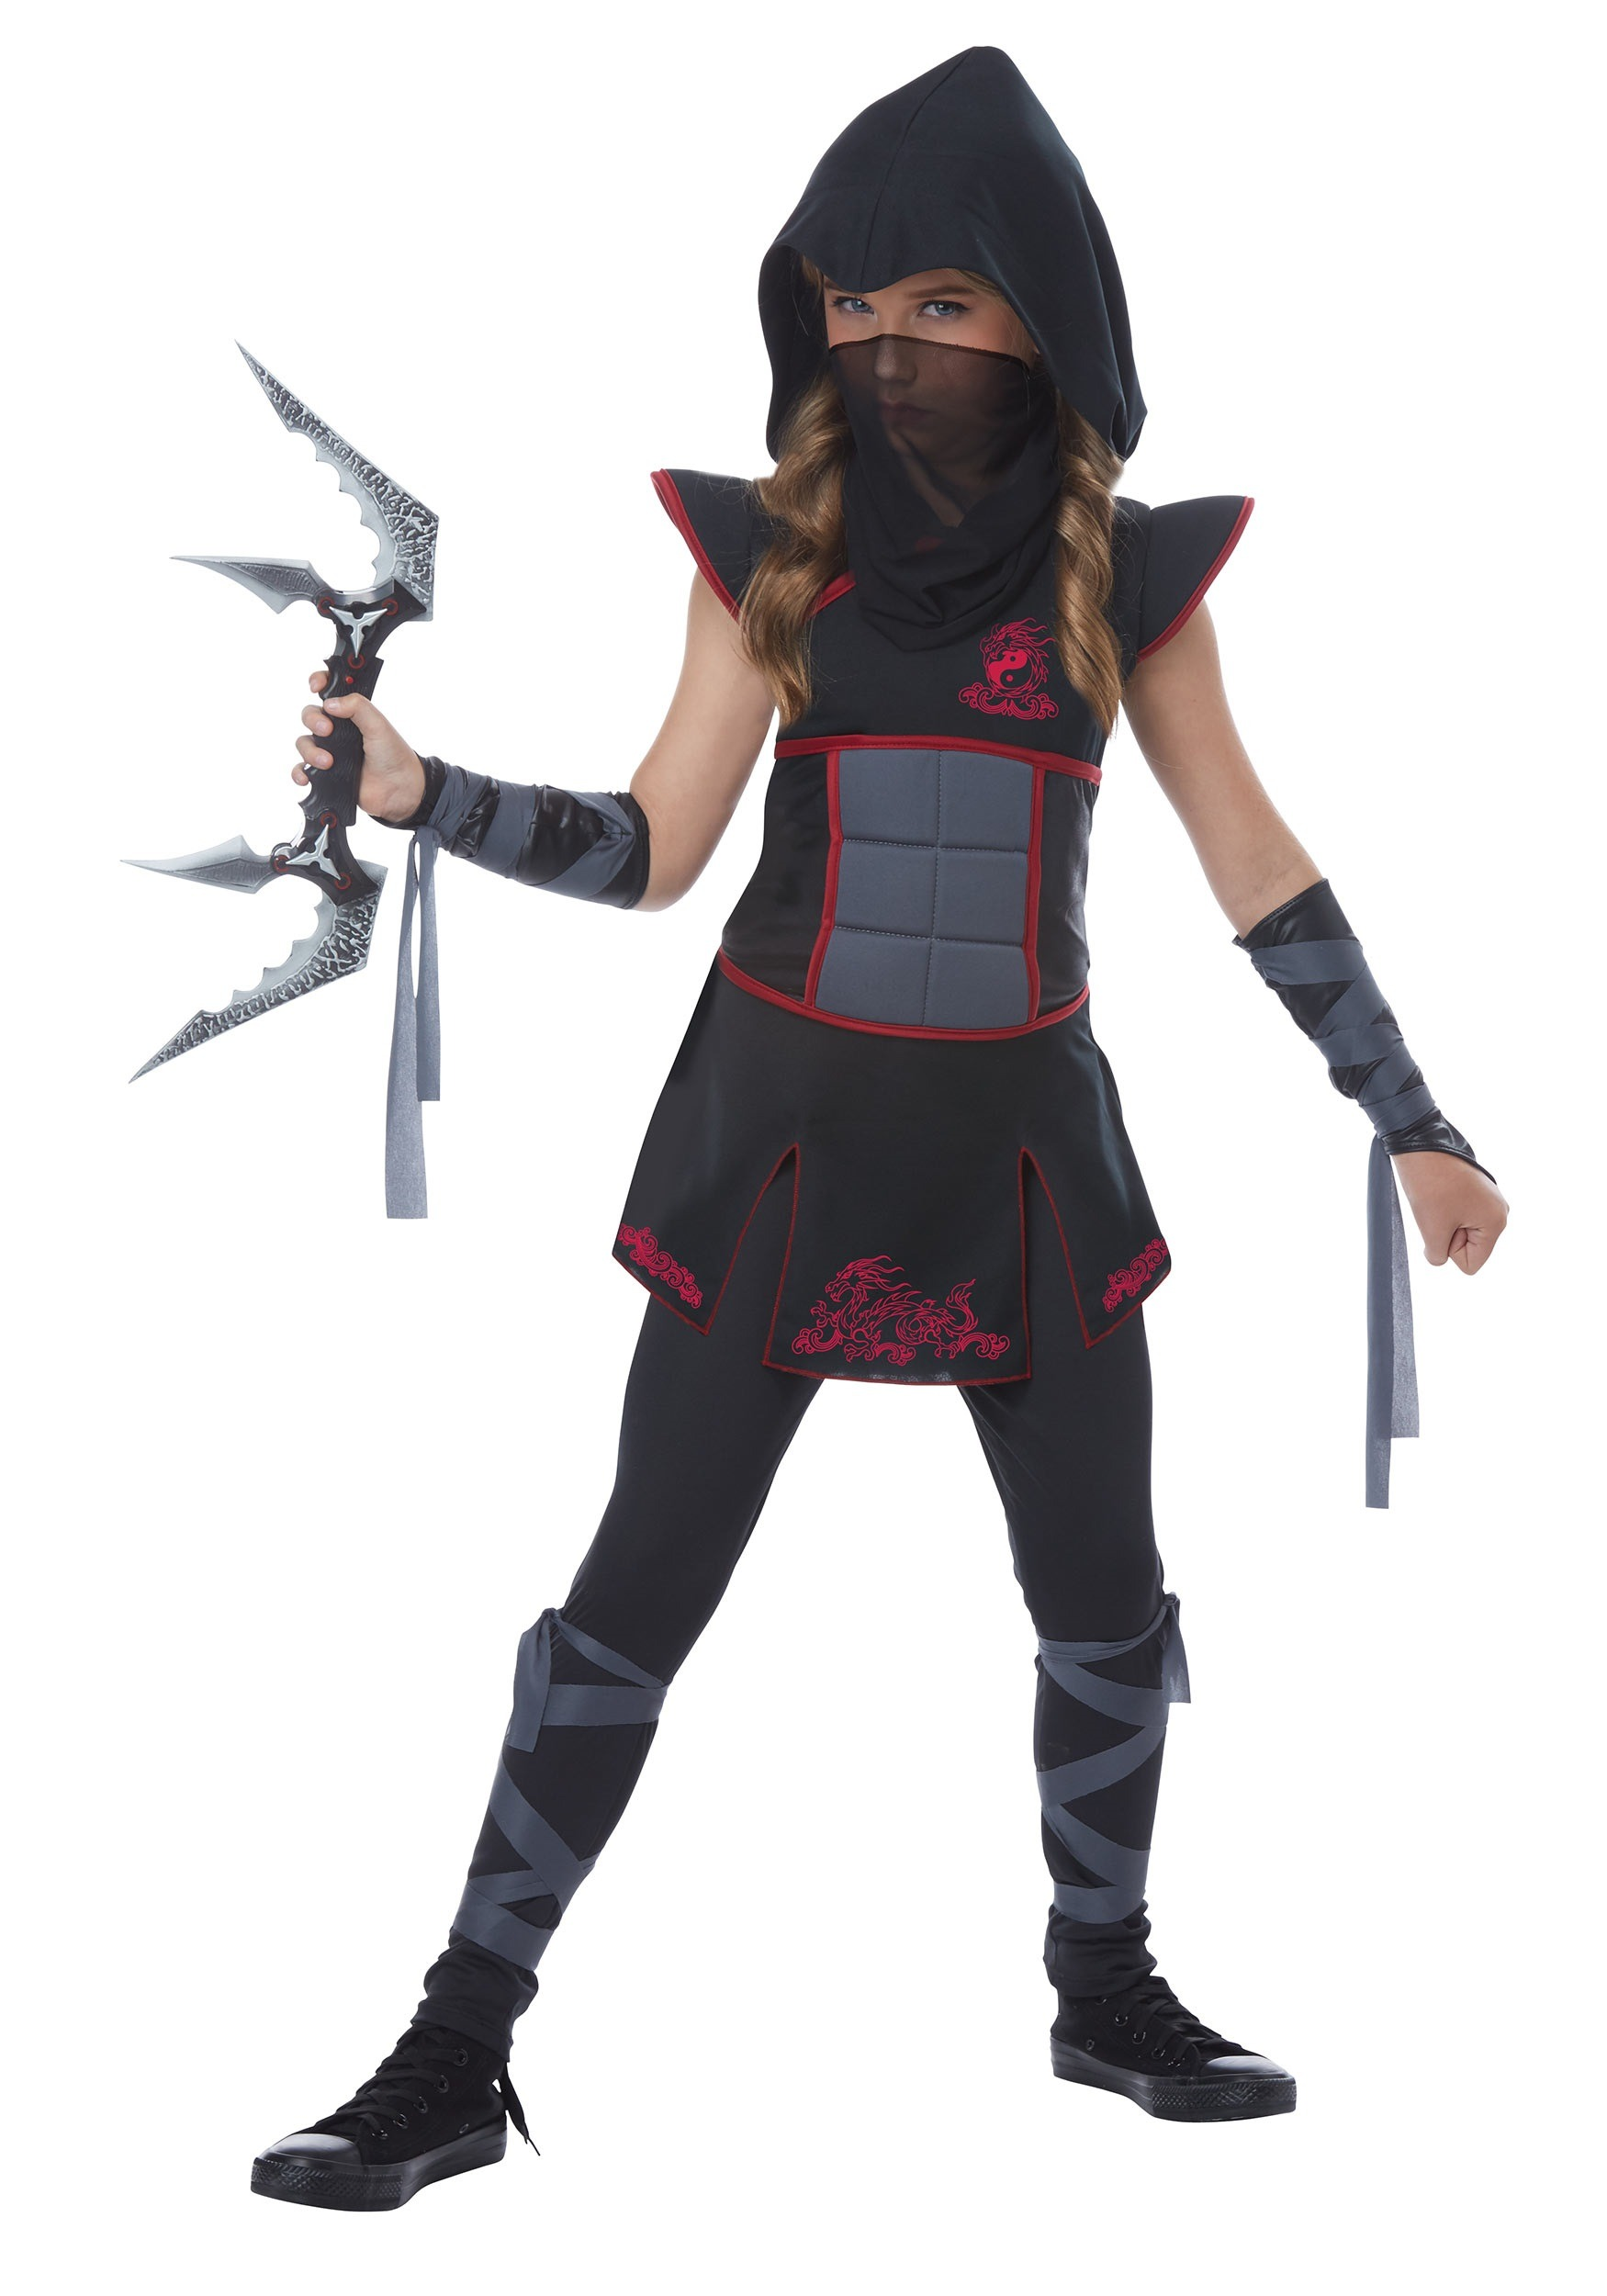 Black Ninja Costume for Girls